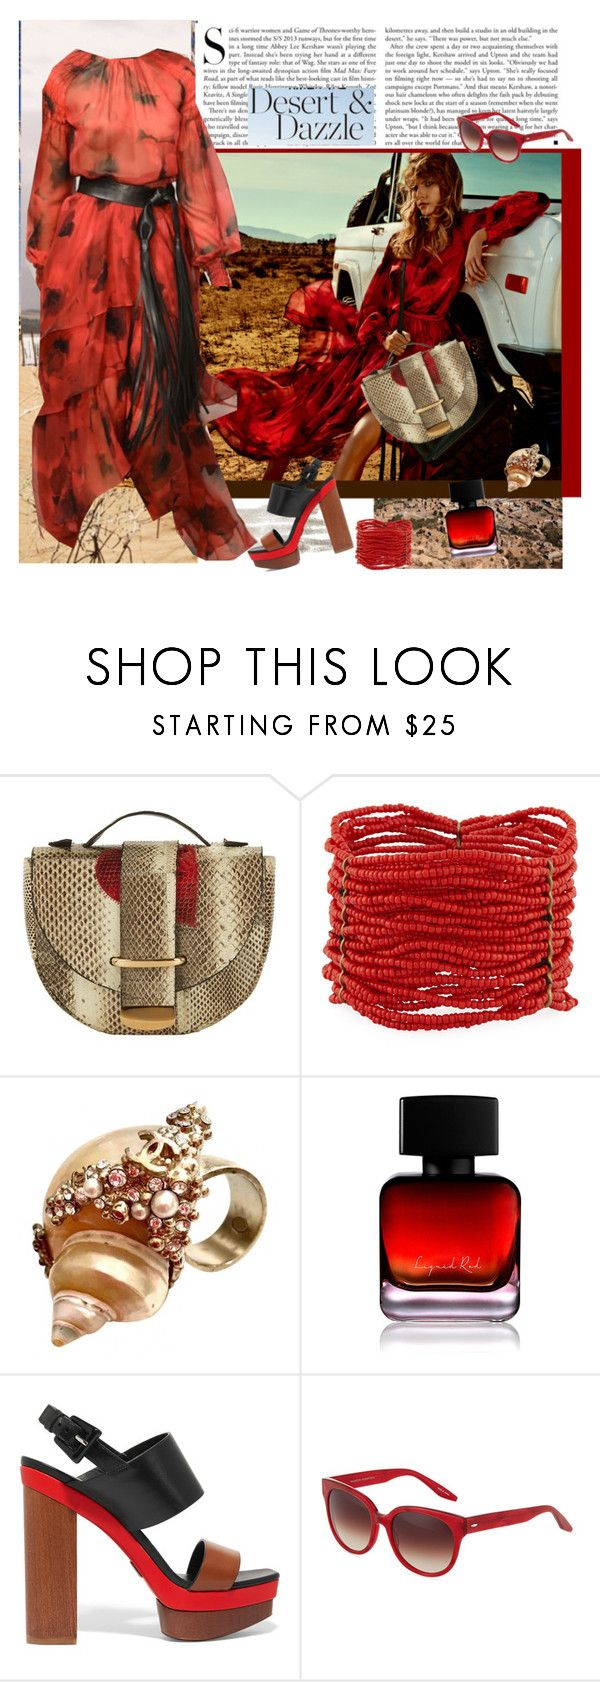 """""""Warmth of the Desert Sun"""" by carola-corana ❤ liked on Polyvore featuring Kershaw, Delphine Delafon, Berry, Chanel, The Collection by Phuong Dang, Michael Kors and Barton Perreira"""